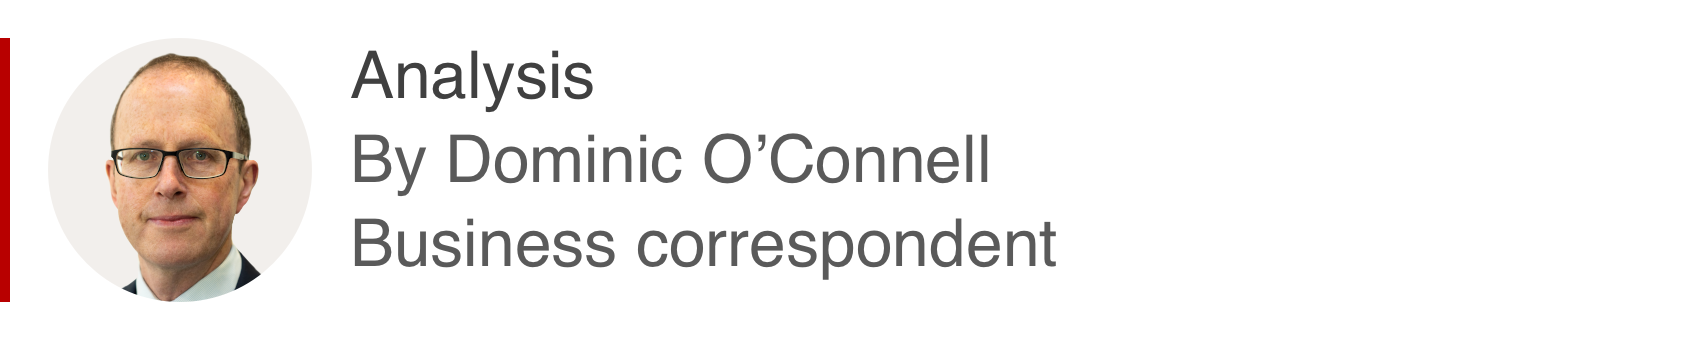 Analysis box by Dominic O'Connell, business correspondent